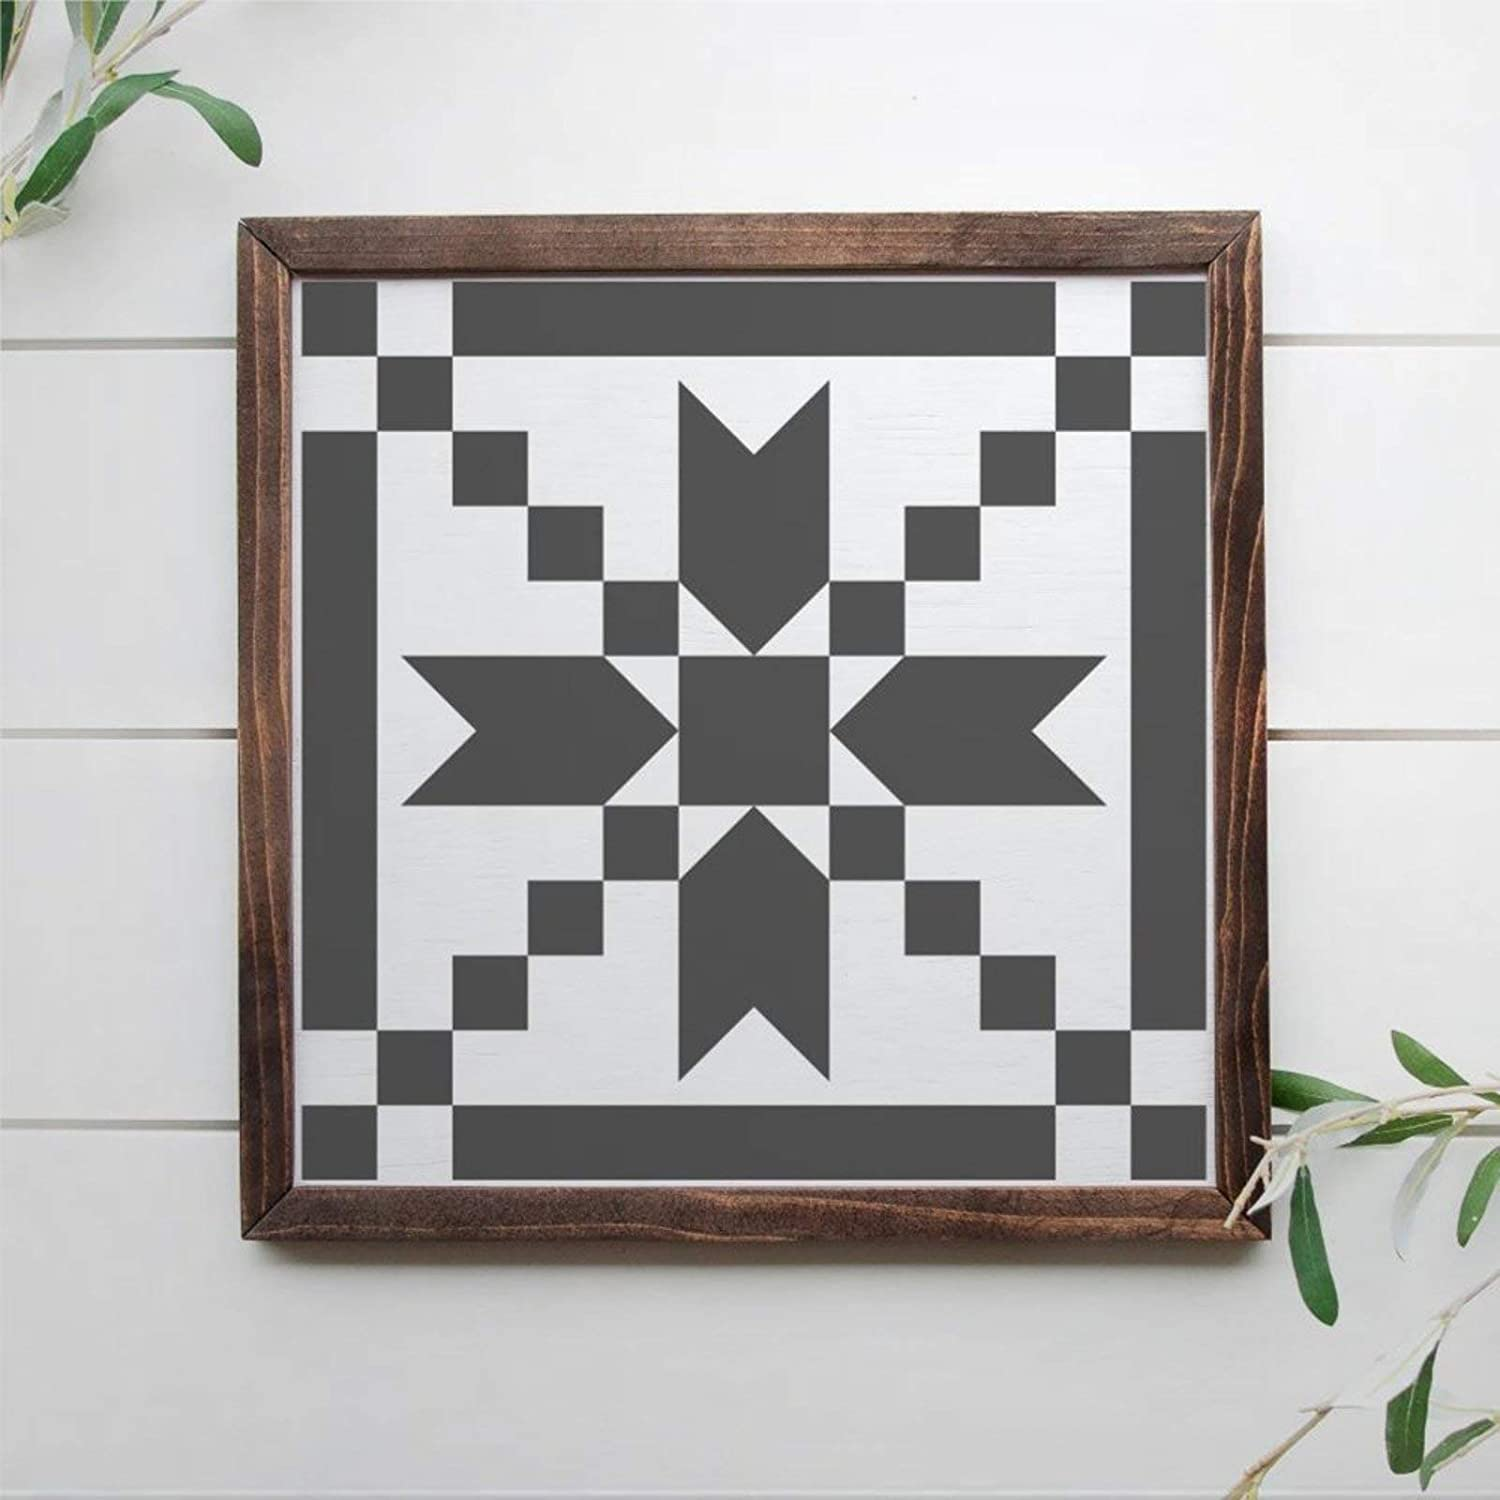 DONL9BAUER Barn Quilt Pattern, 12x12 Framed Wooden Sign, Rustic Wood Sign Wall Hanging Farmhouse Home Decor Wall Art